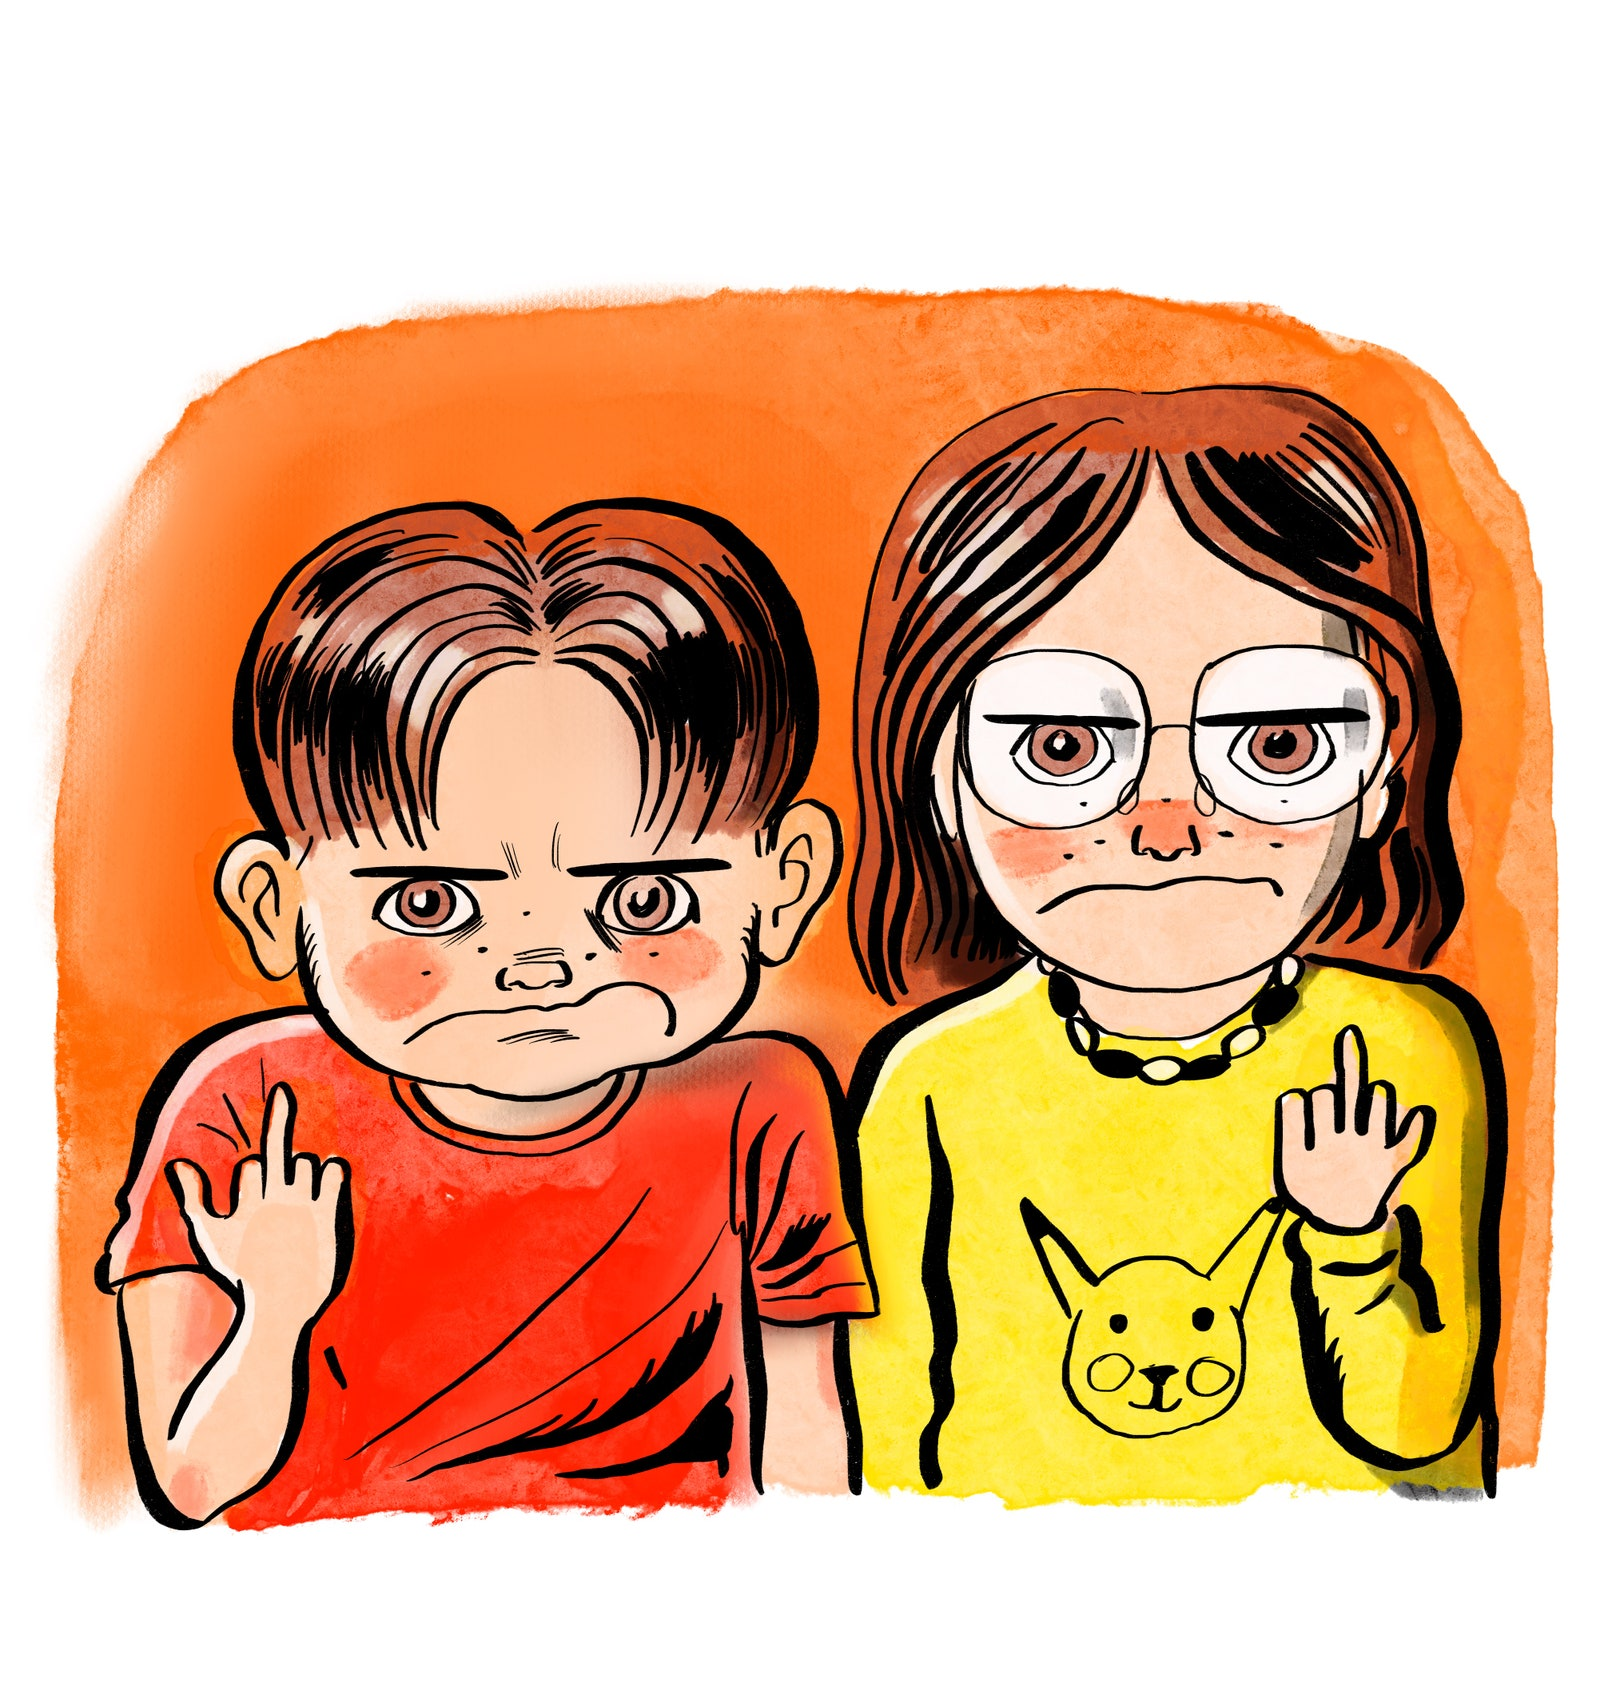 Two children giving the middle finger.